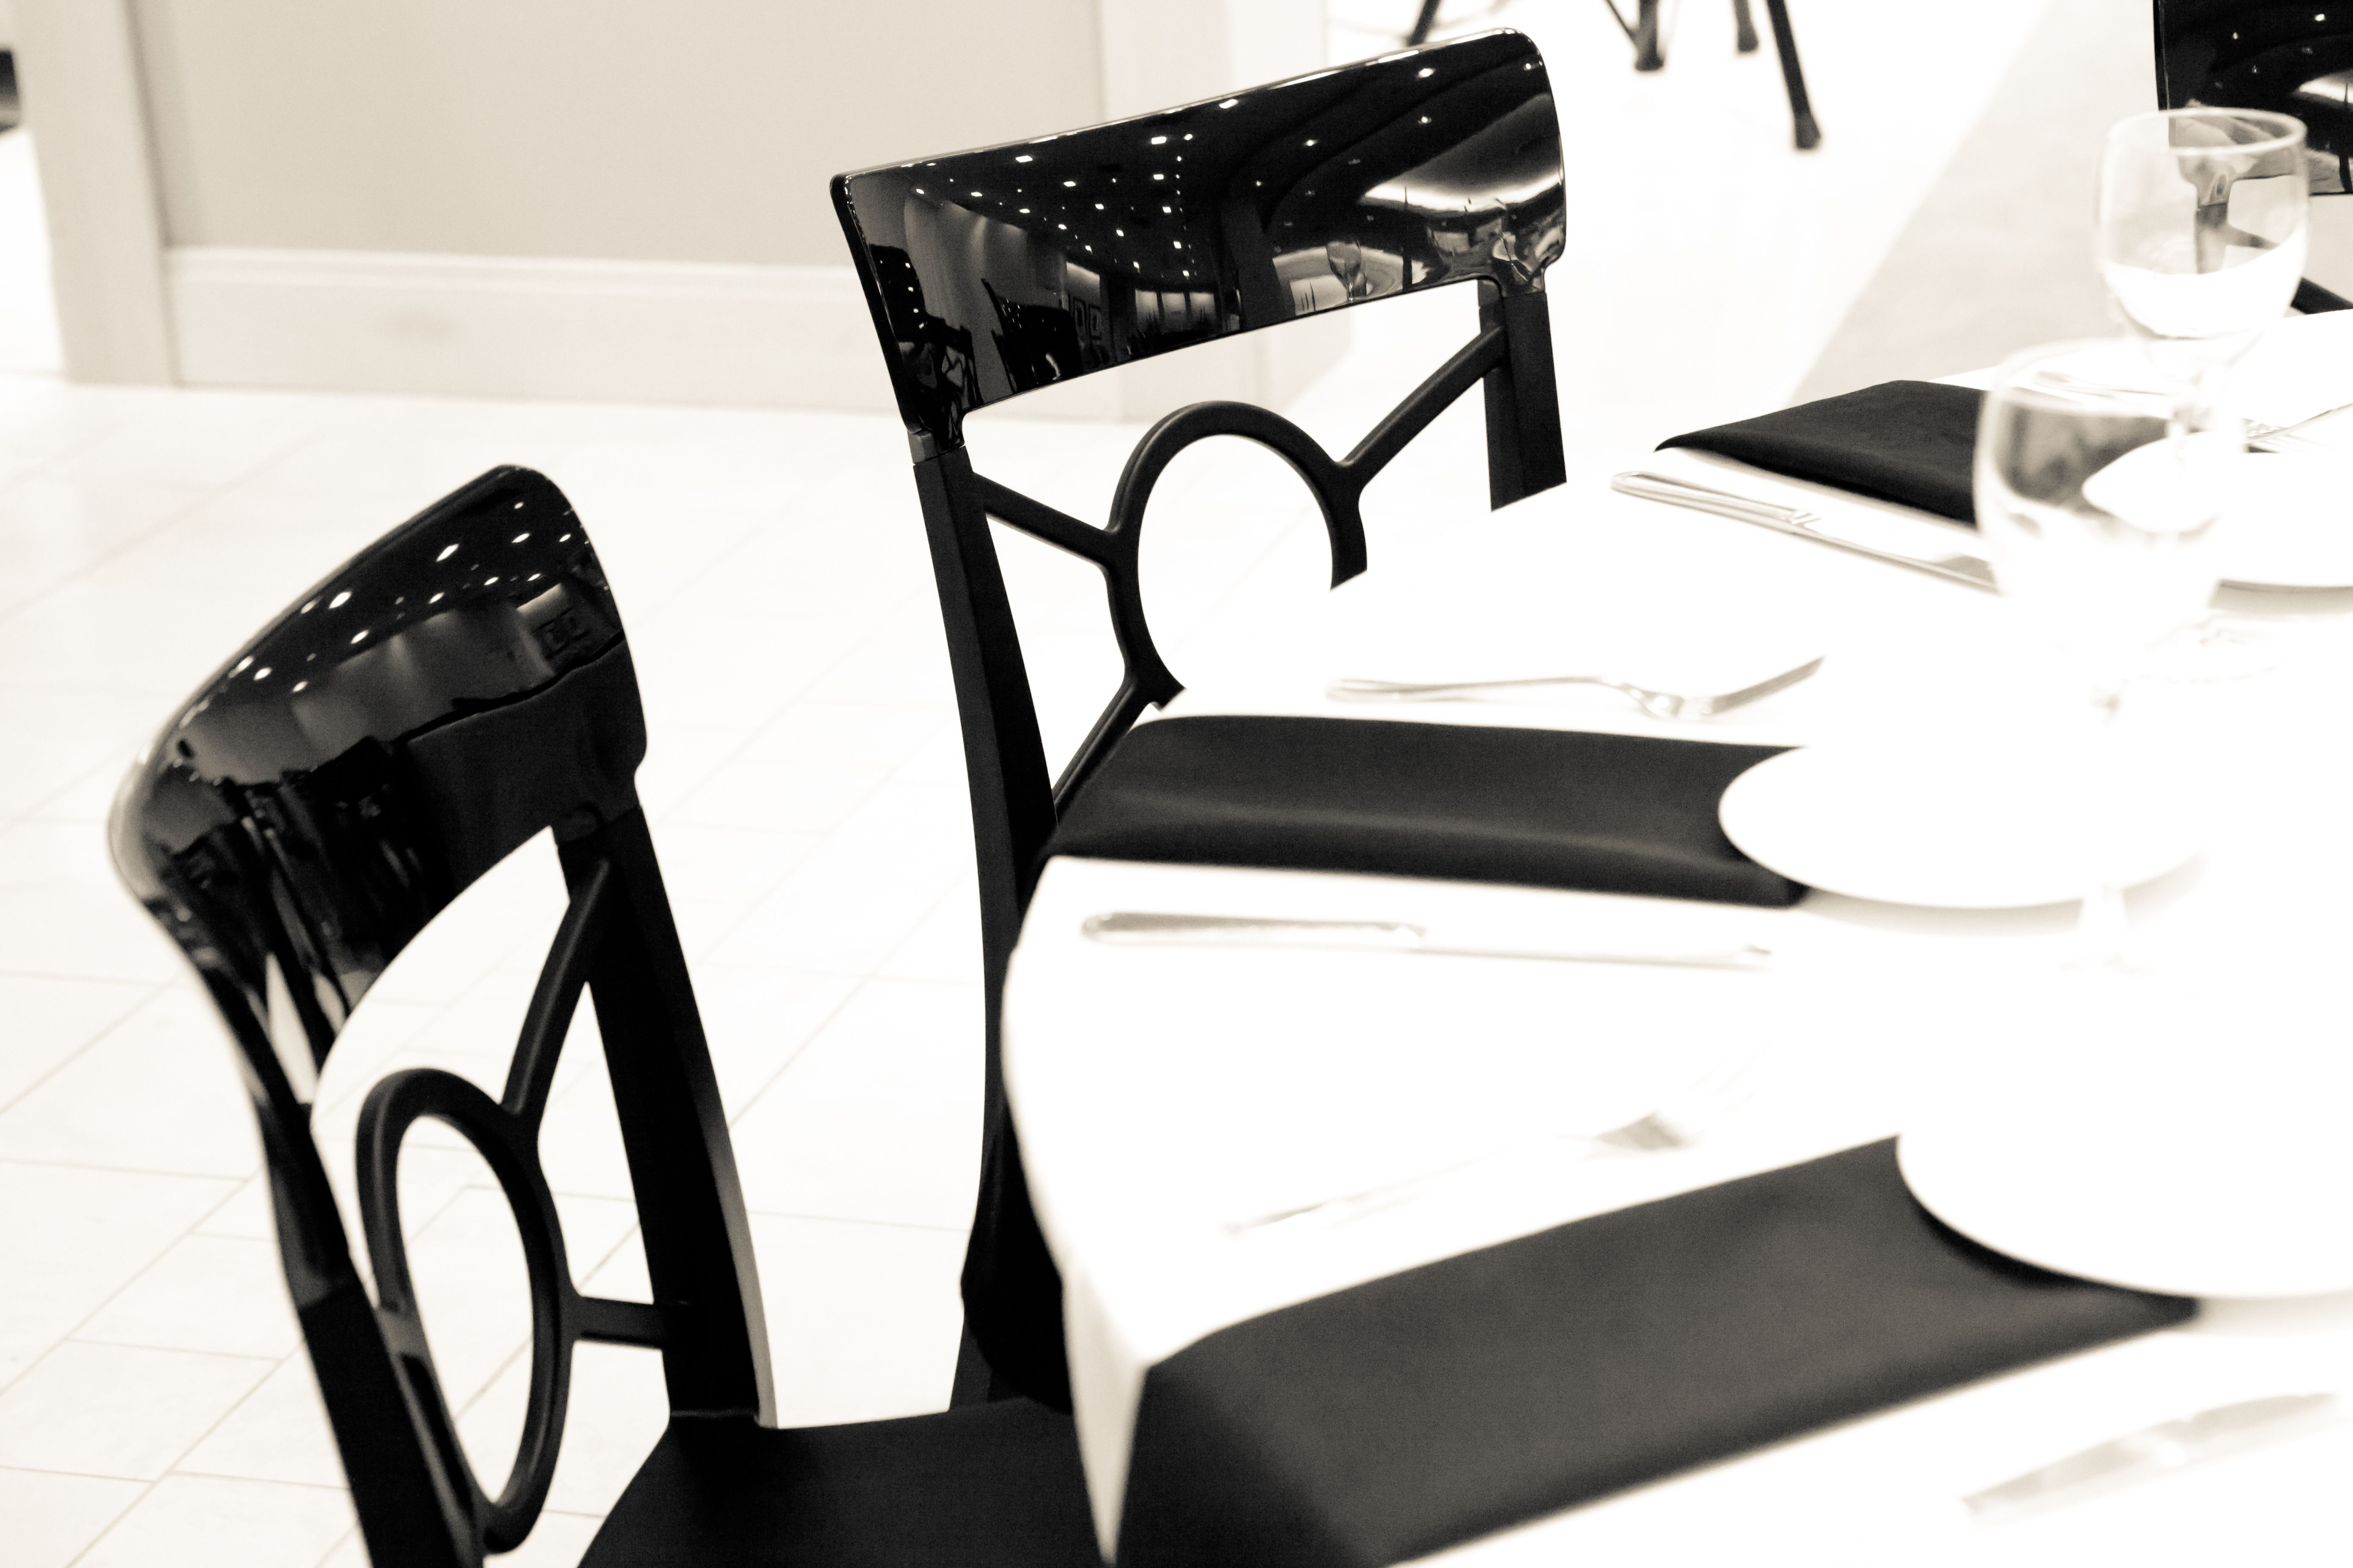 VF Black Tuxedo Chairs Http://www.chiavarichairs.com/vision